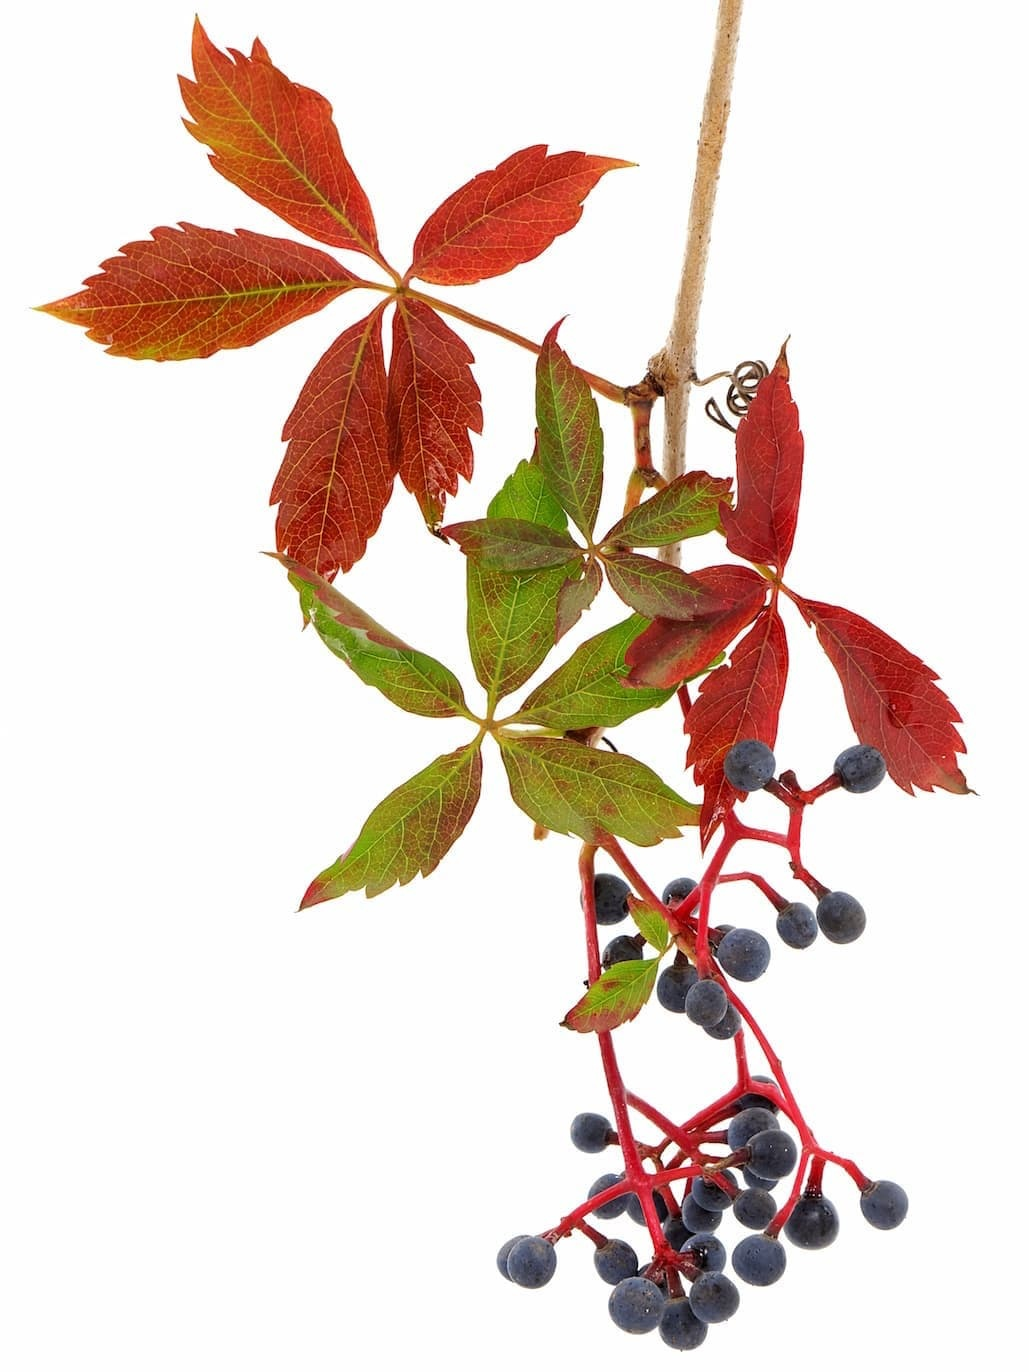 Virginia-Creeper-identification ID: 126729602 © Emilio100 | Dreamstime.com